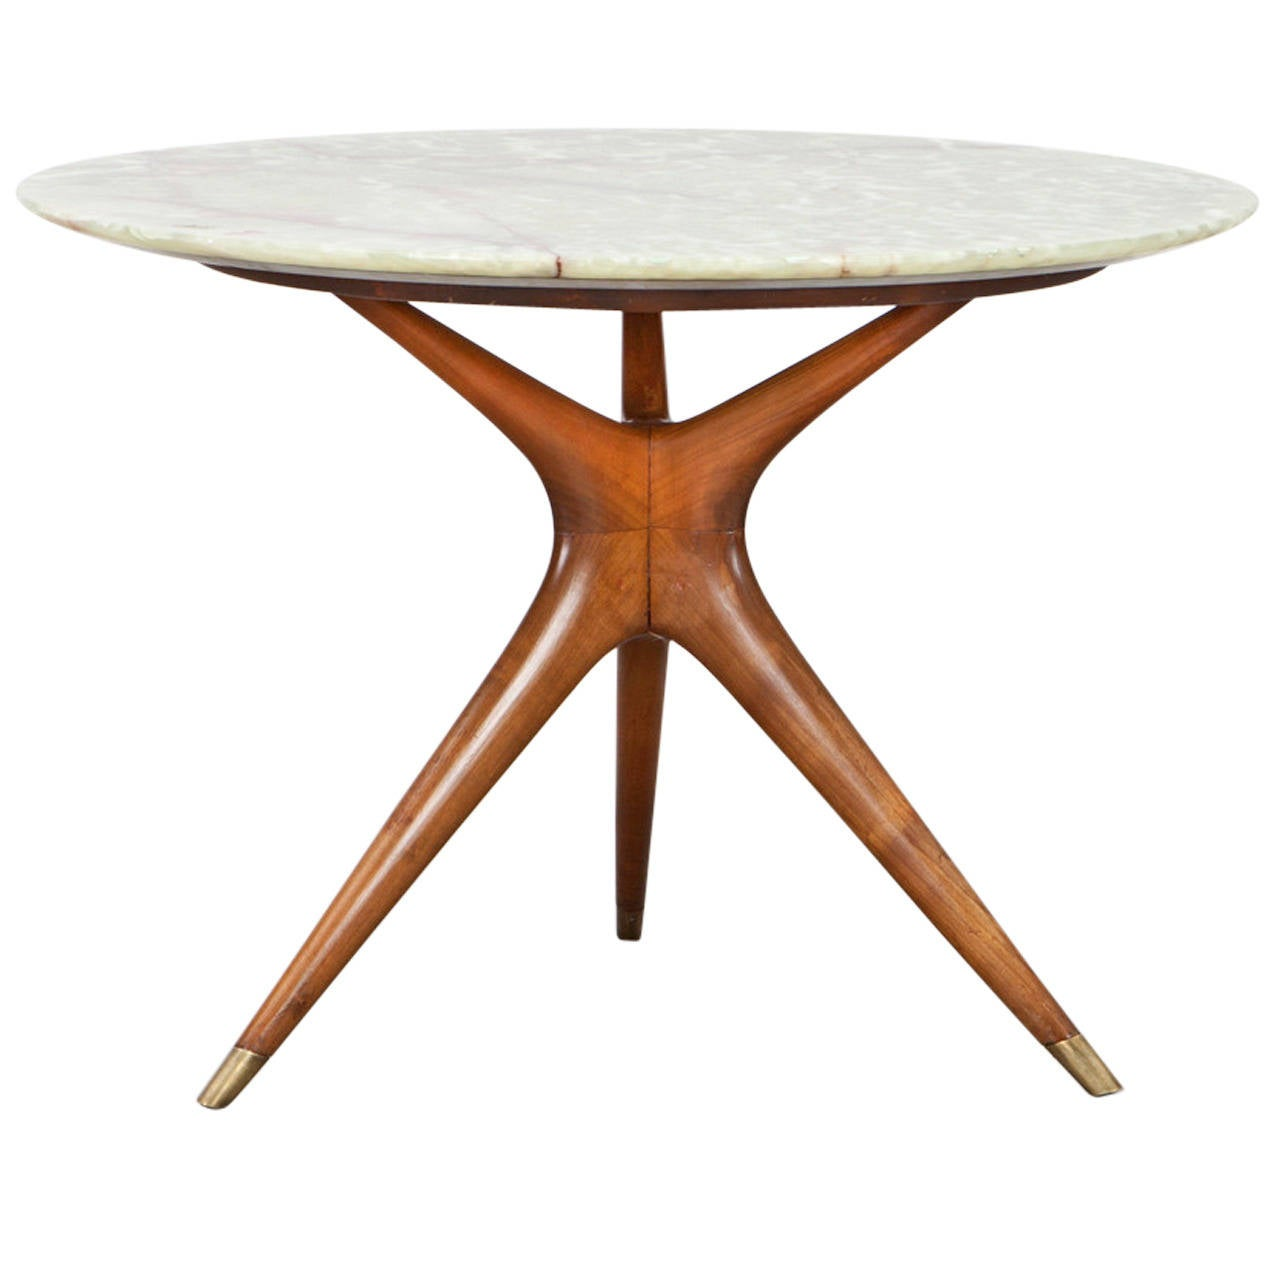 Perfect Ico Parisi Round Marble Top Table 1